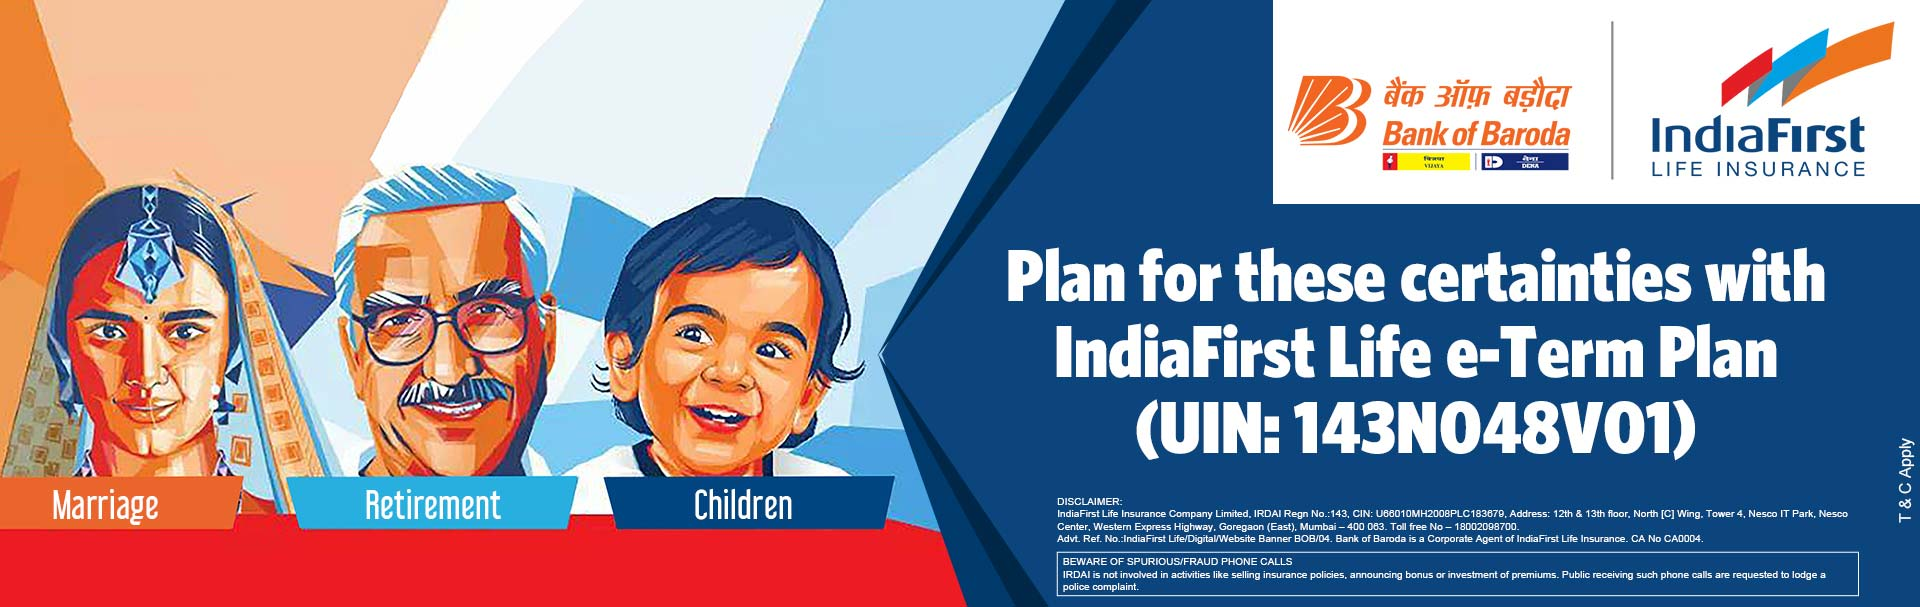 Buy IndiaFirst Life Insurance Policy in India | Bank of Baroda